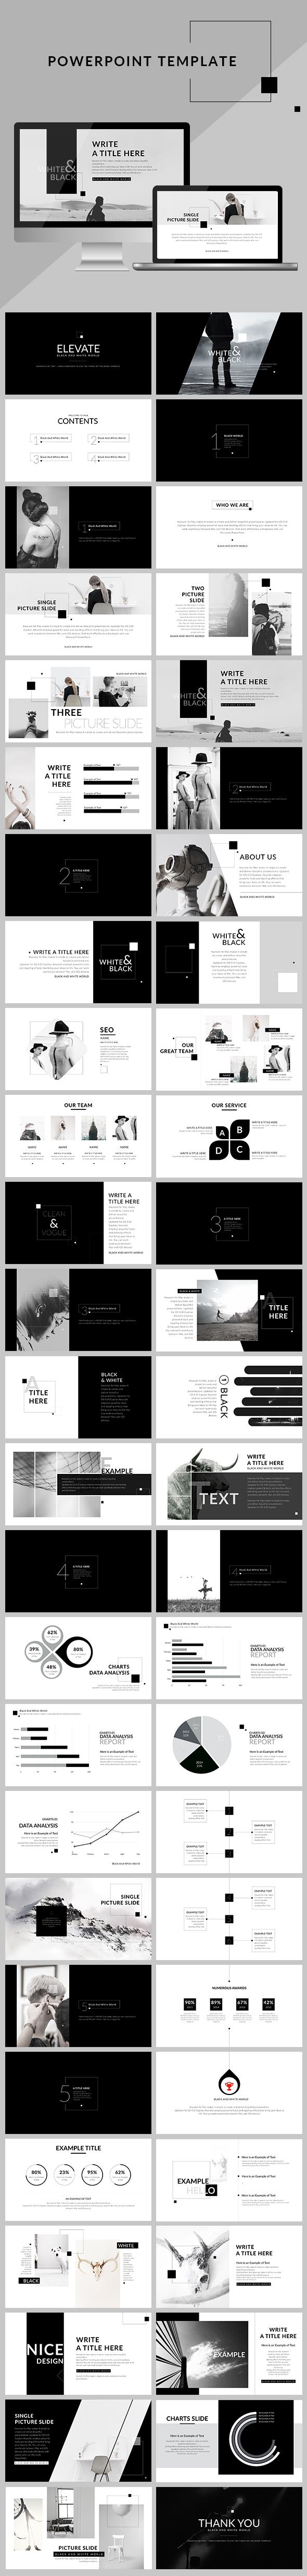 Black & White - Creative clean Powerpoint Presentation Template. Download here: https://graphicriver.net/item/black-white-creative-clean-powerpoint-presentation/16990669?ref=ksioks